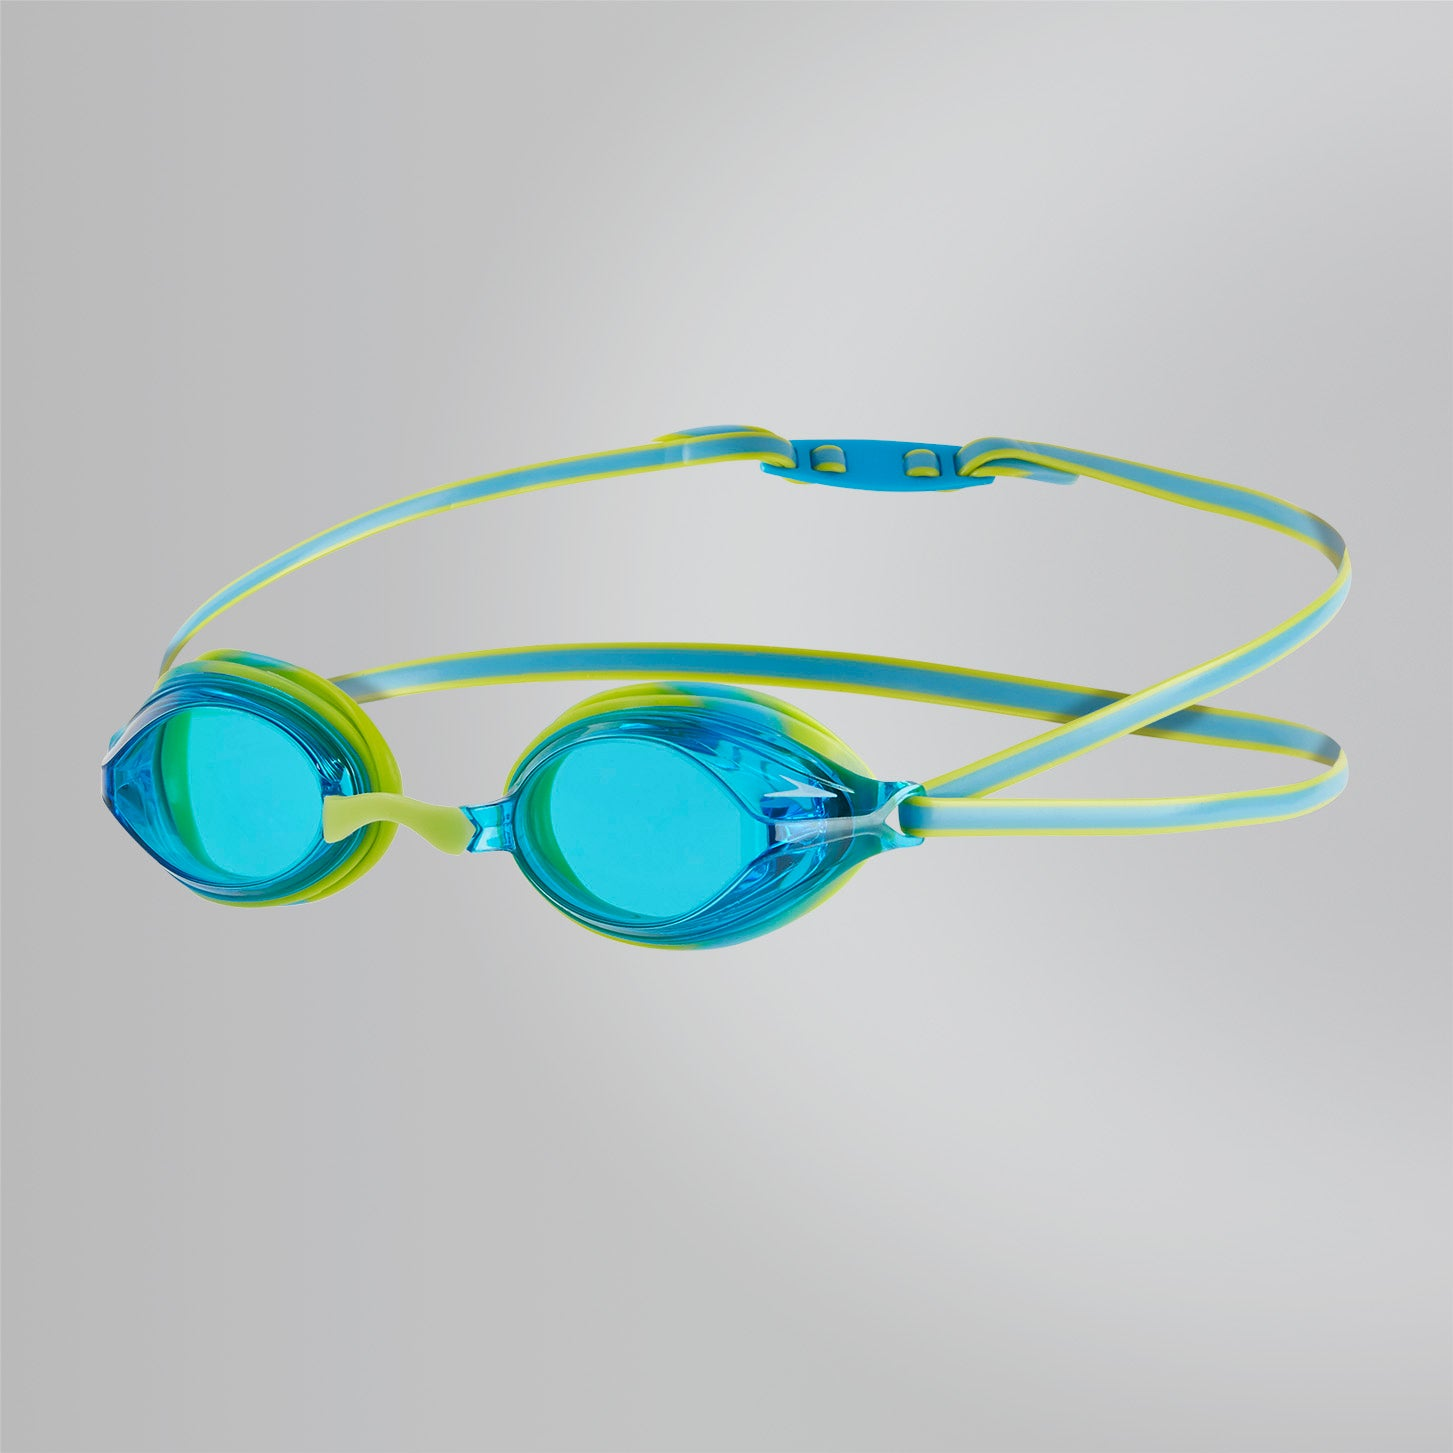 416c2c2691 Buy Speedo Kids Vengeance Goggles, Lime Punch/Japan Blue Online in  Singapore | Royal Sporting House